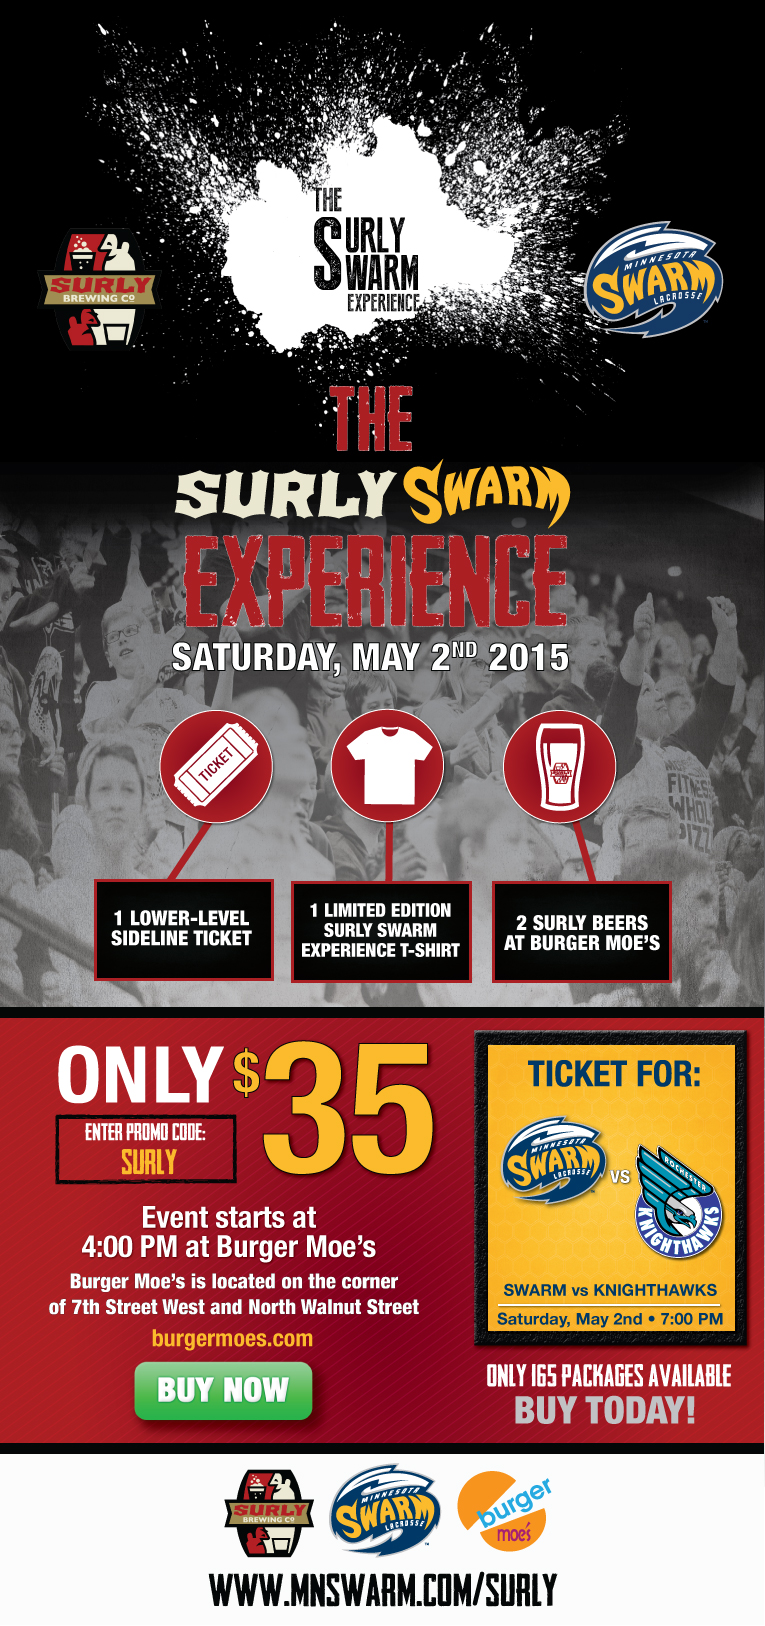 Surly Swarm Experience